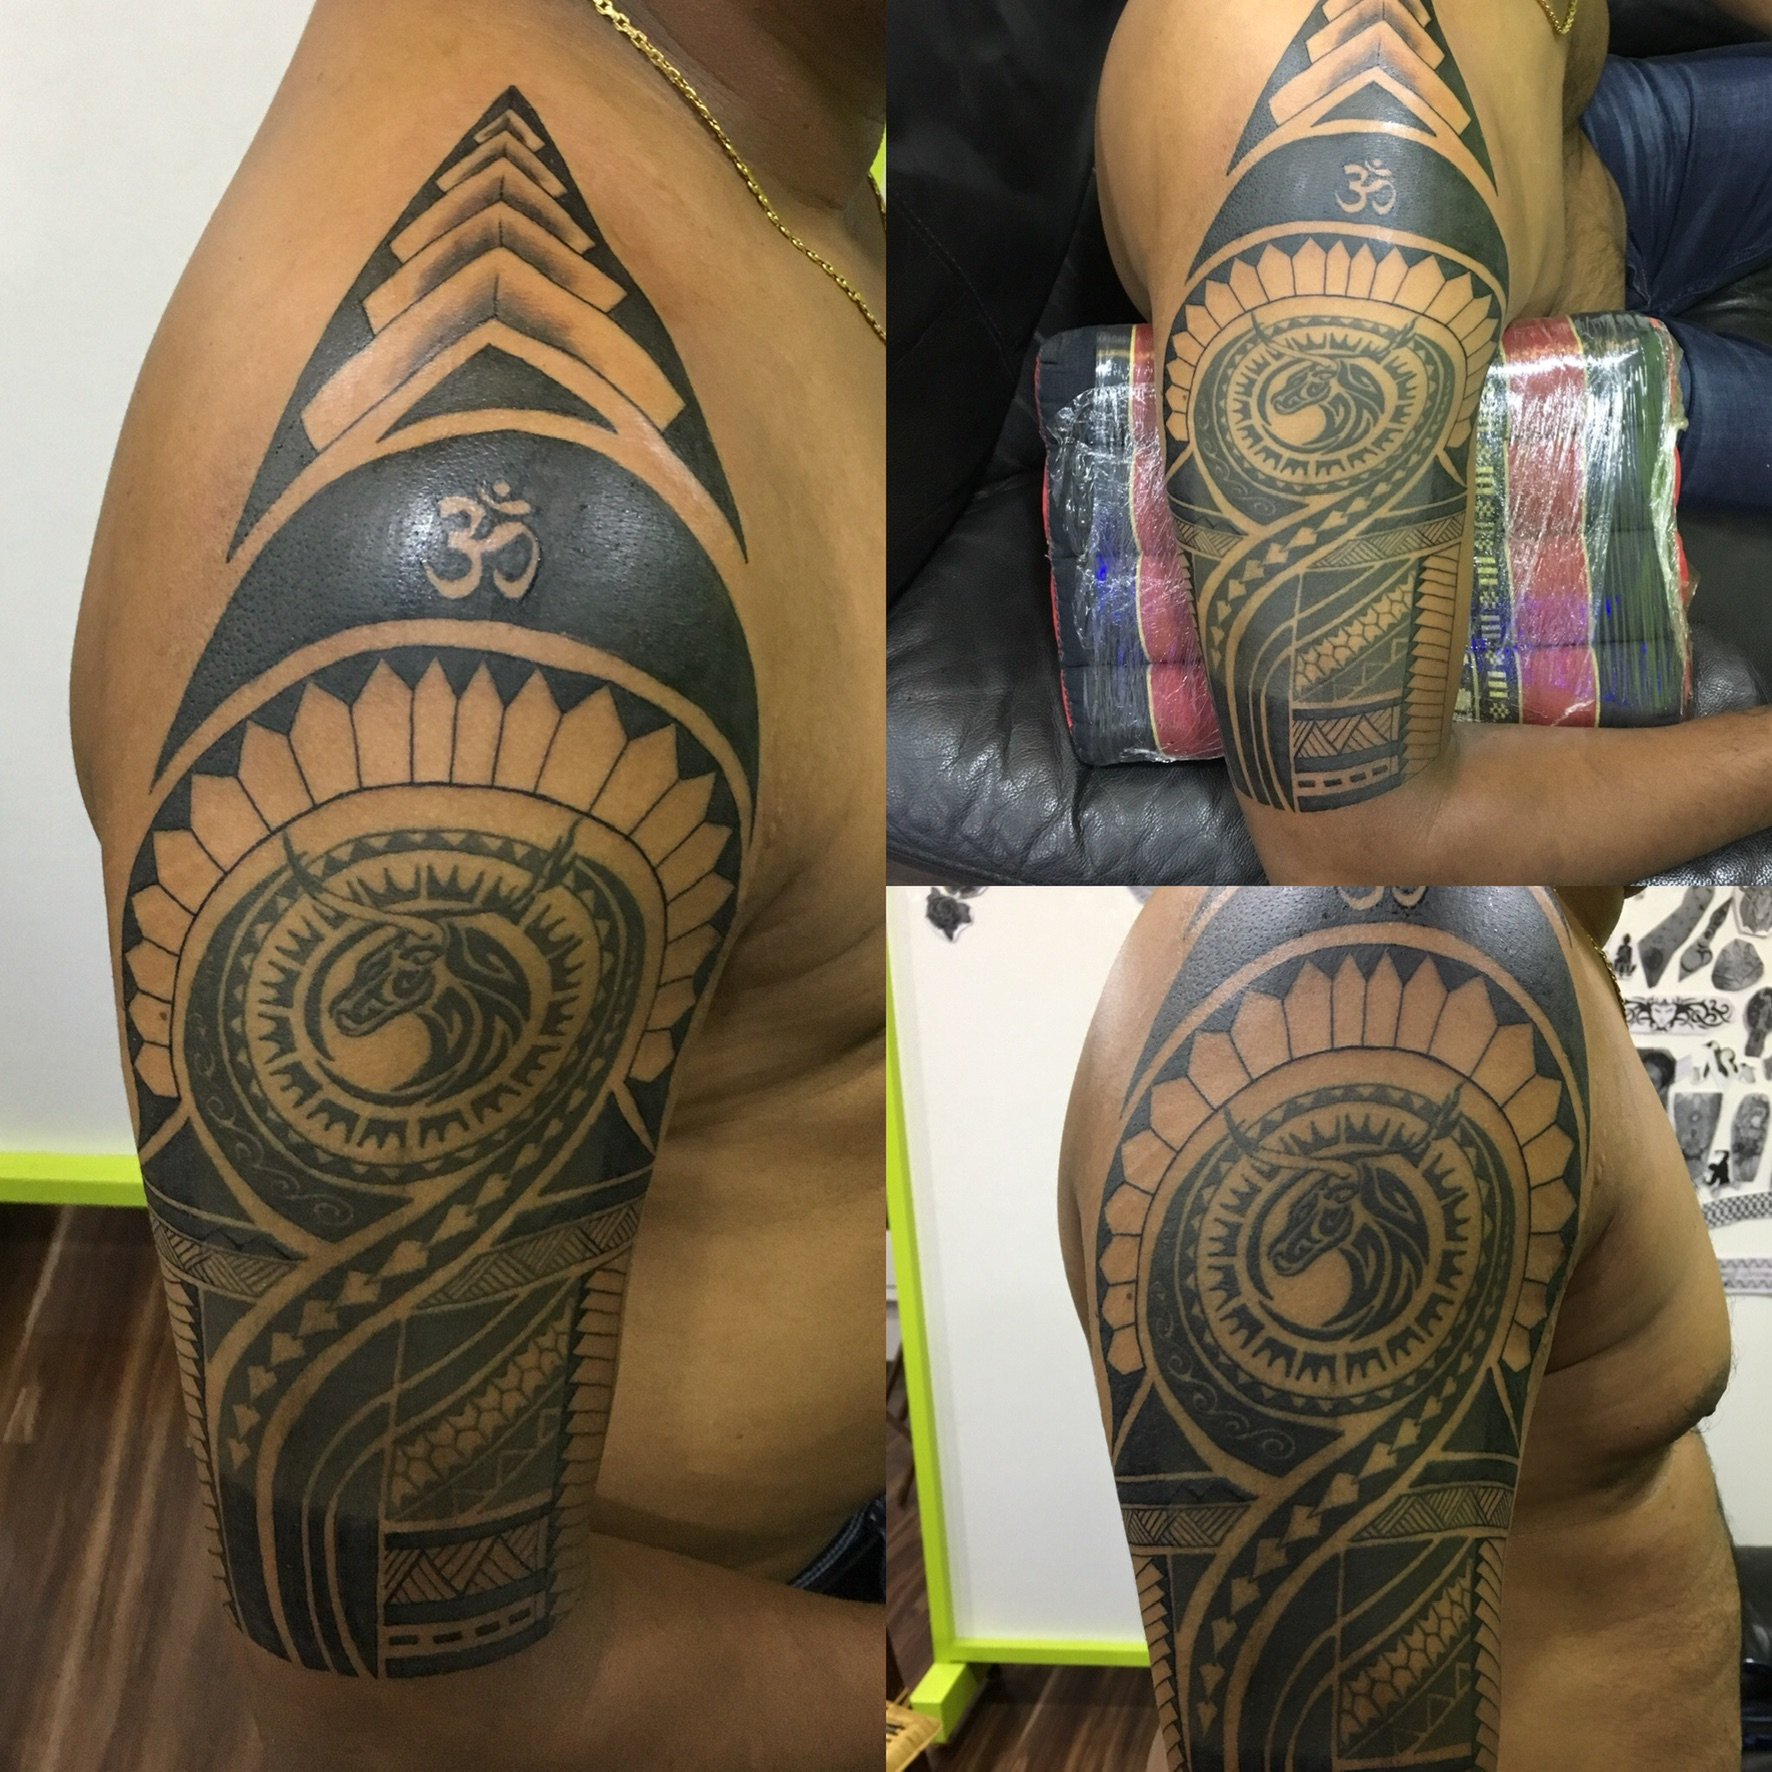 Tattoo designs for women in coimbatore